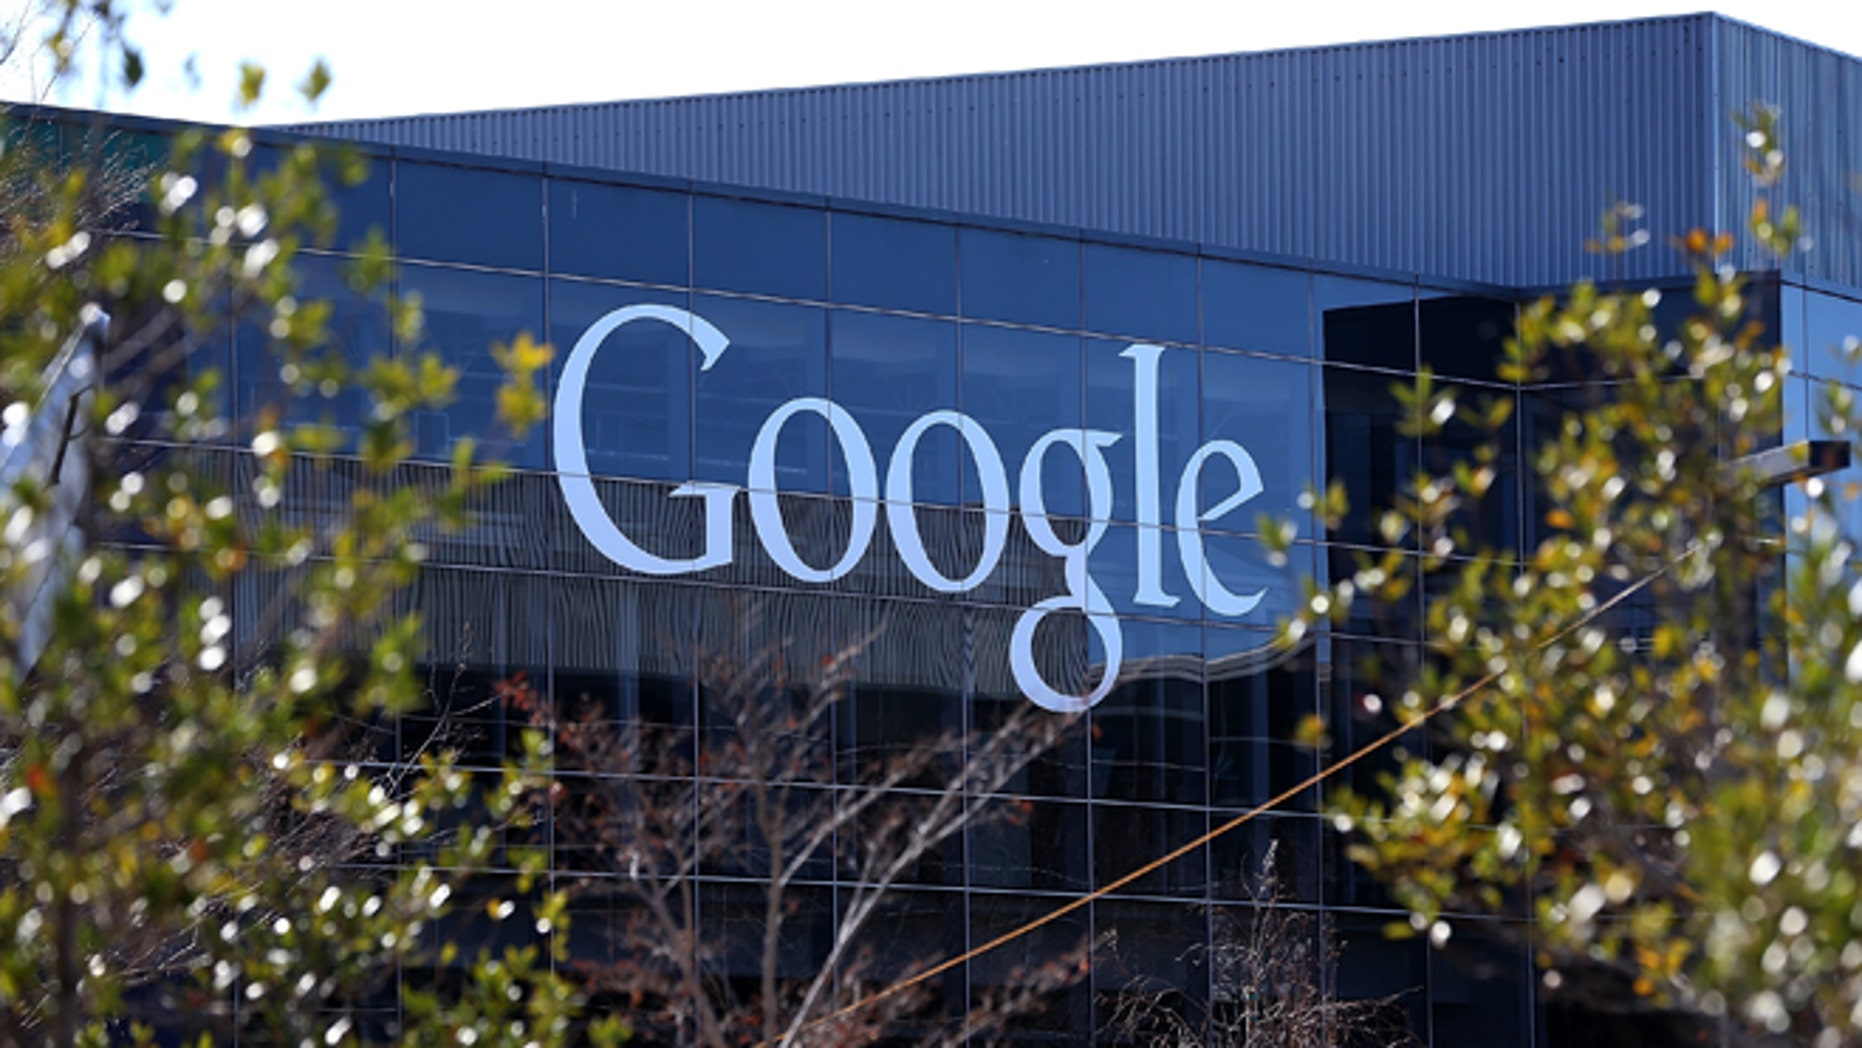 The decision gives Europeans the means to polish their online reputations by petitioning Google and other search engines to remove potentially damaging links to newspaper articles and other websites with embarrassing information about their past activities. (Justin Sullivan/Getty Images)